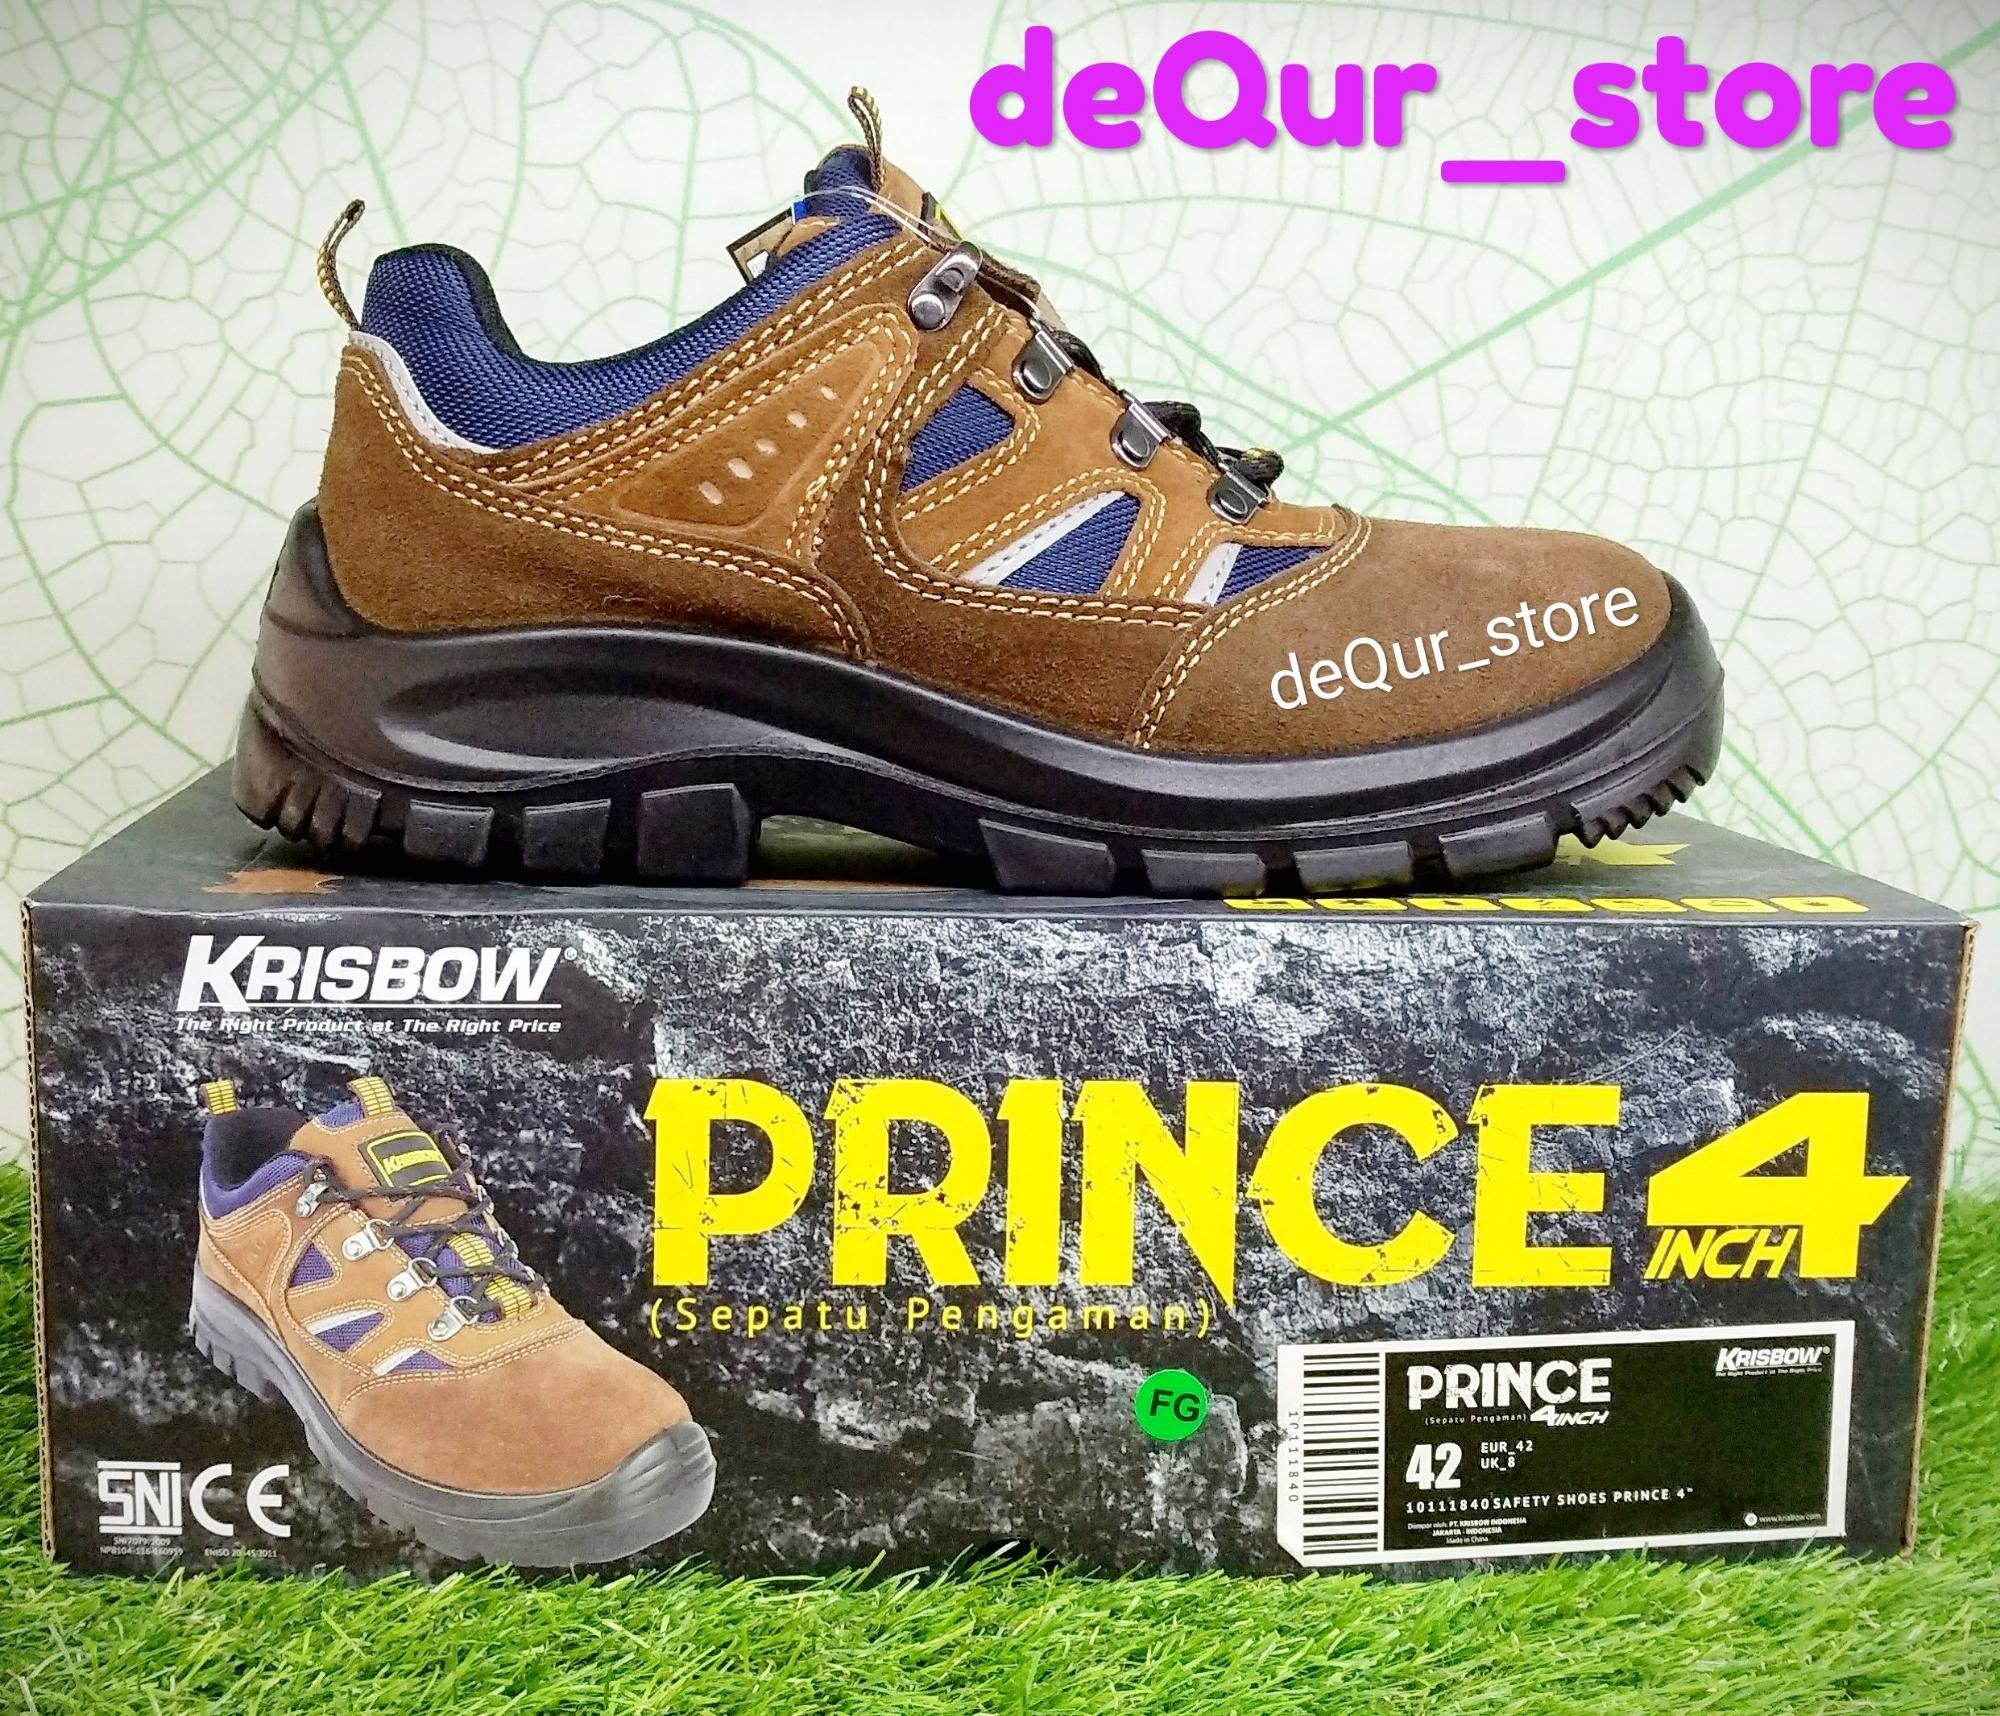 Krisbow safety shoes type Prince 4 inch sepatu pengaman krisbow tipe Prince 4 inch